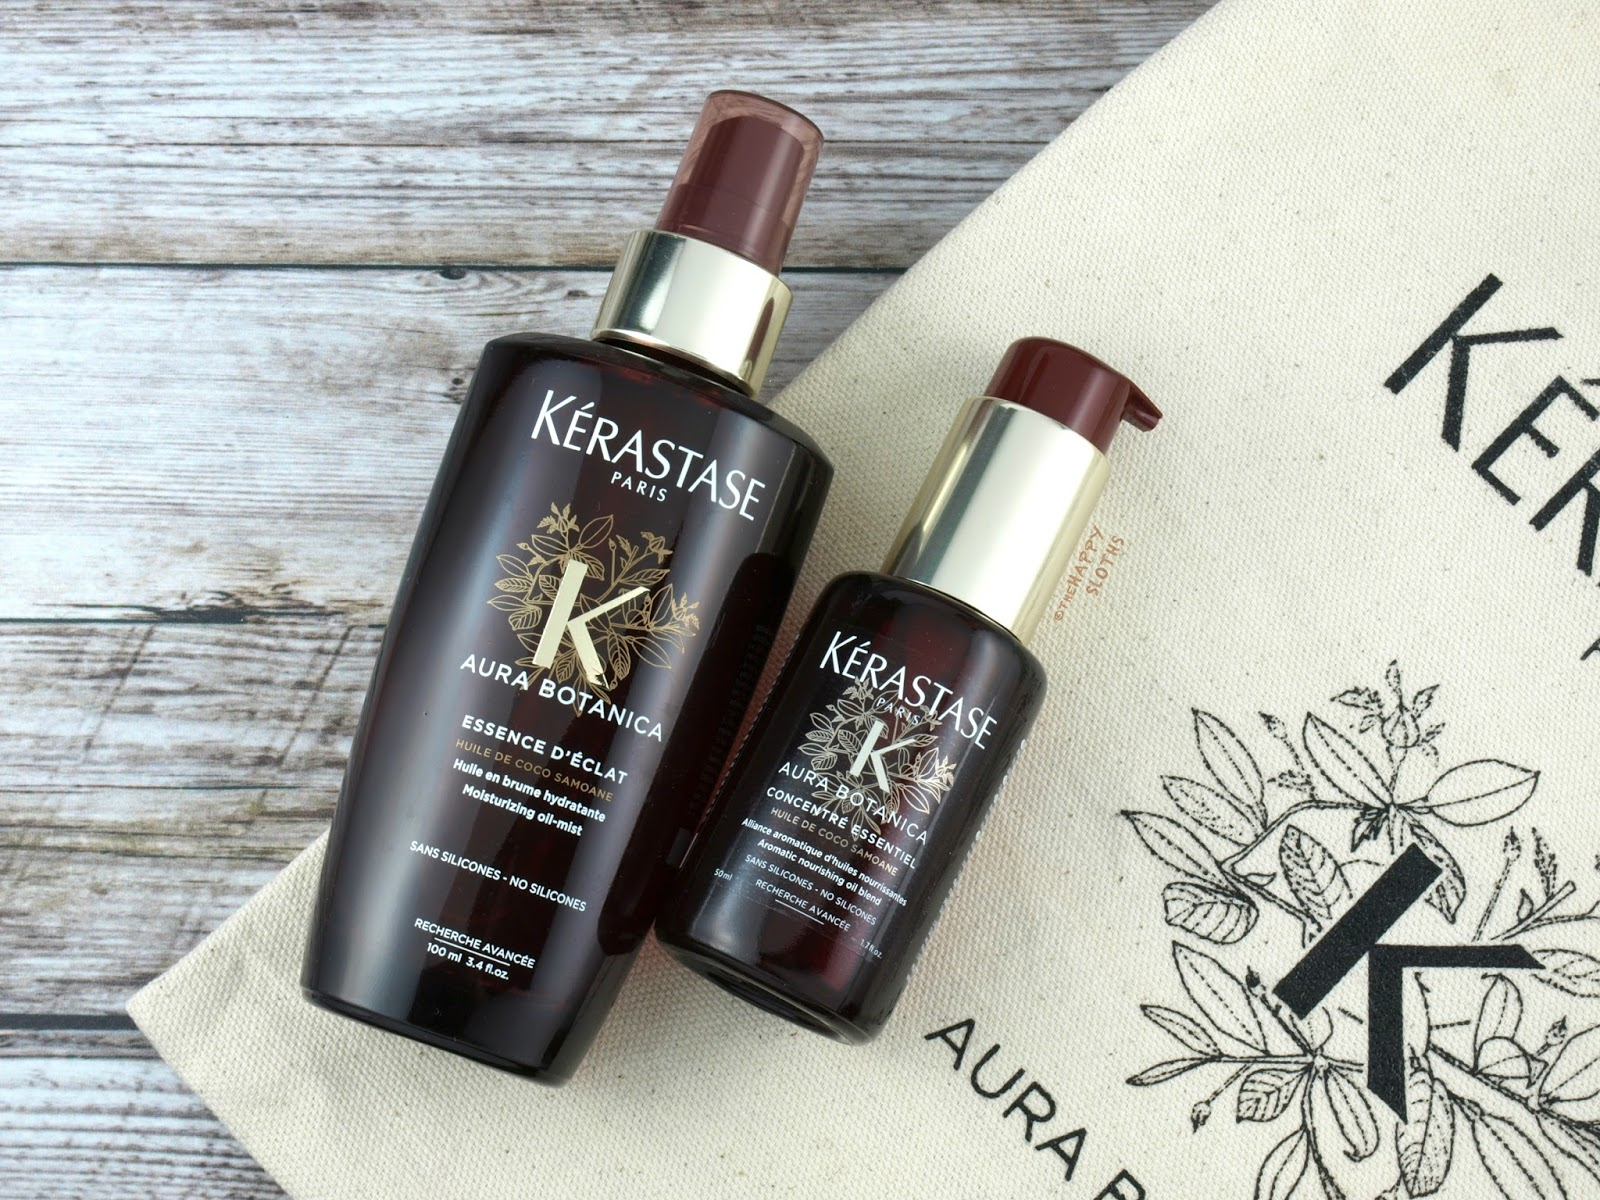 Kerastase Aura Botanica Collection | Oil Mist & Oil Blend: Review